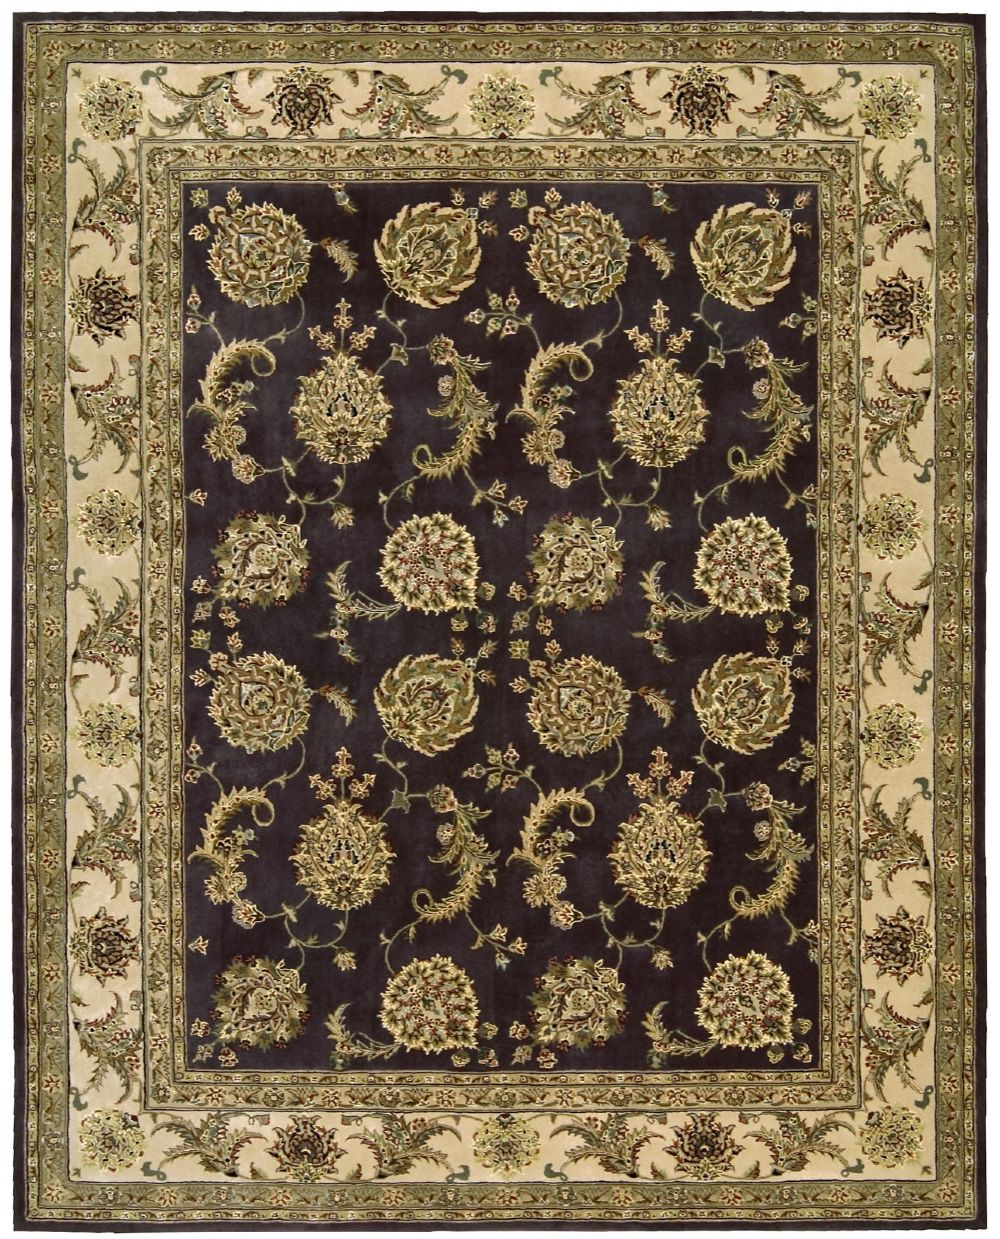 nourison nourison 2000 traditional area rug collection